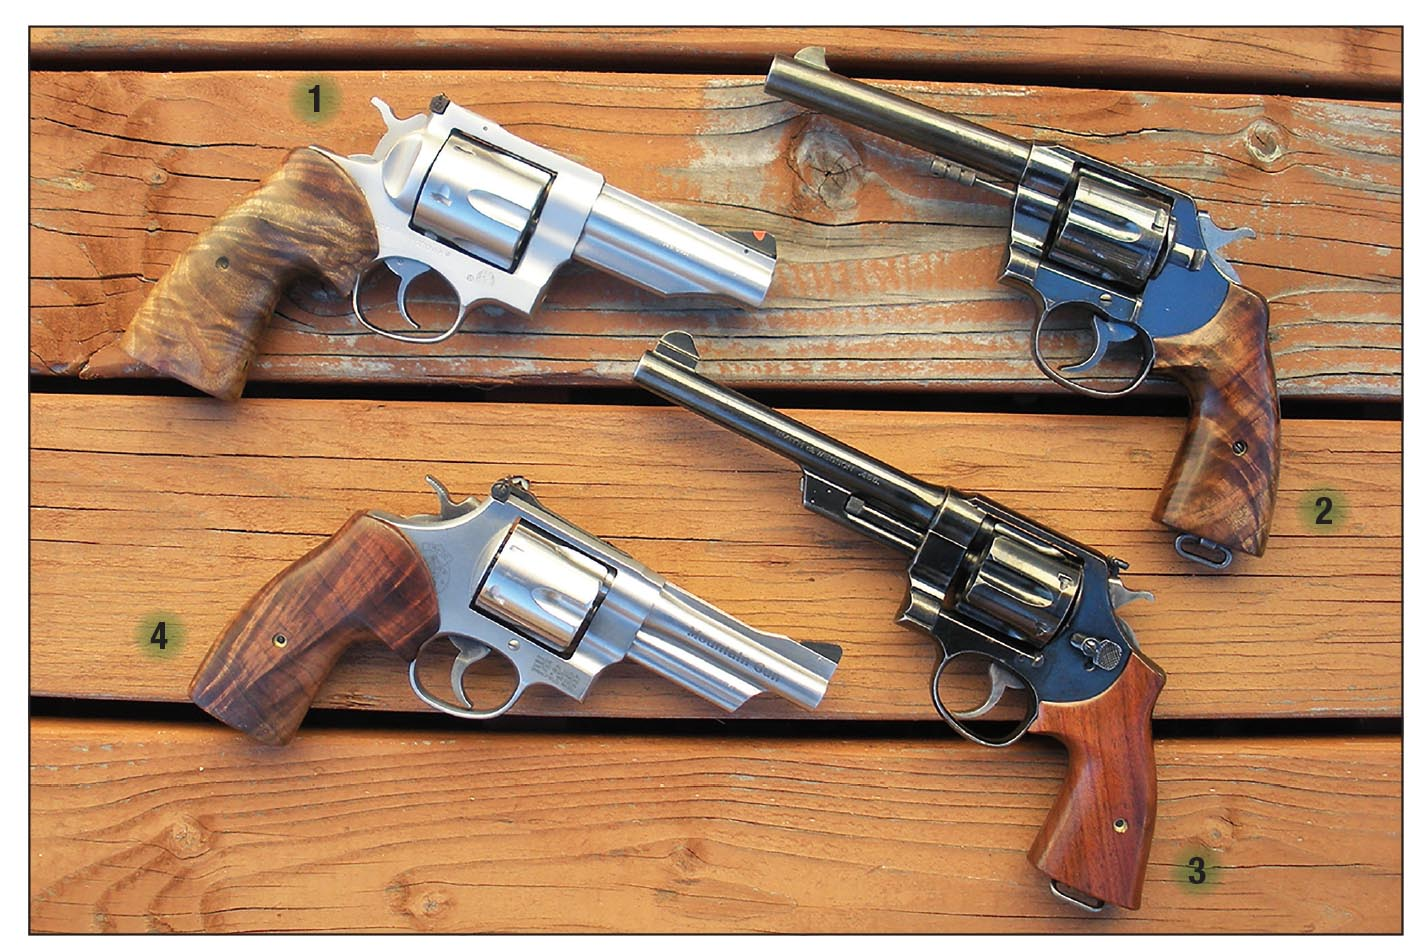 "Double actions include a (1) Ruger Redhawk .4515-plus (chamber throat) and .451 (barrel groove); (2) Colt New Service ""Navy"" Model 1909, .457 and .454; (3) Smith & Wesson New Century, aka Triple Lock, .456 and .455 and (4) Smith & Wesson Model 25-6 Mountain Gun, .451-plus and .451."